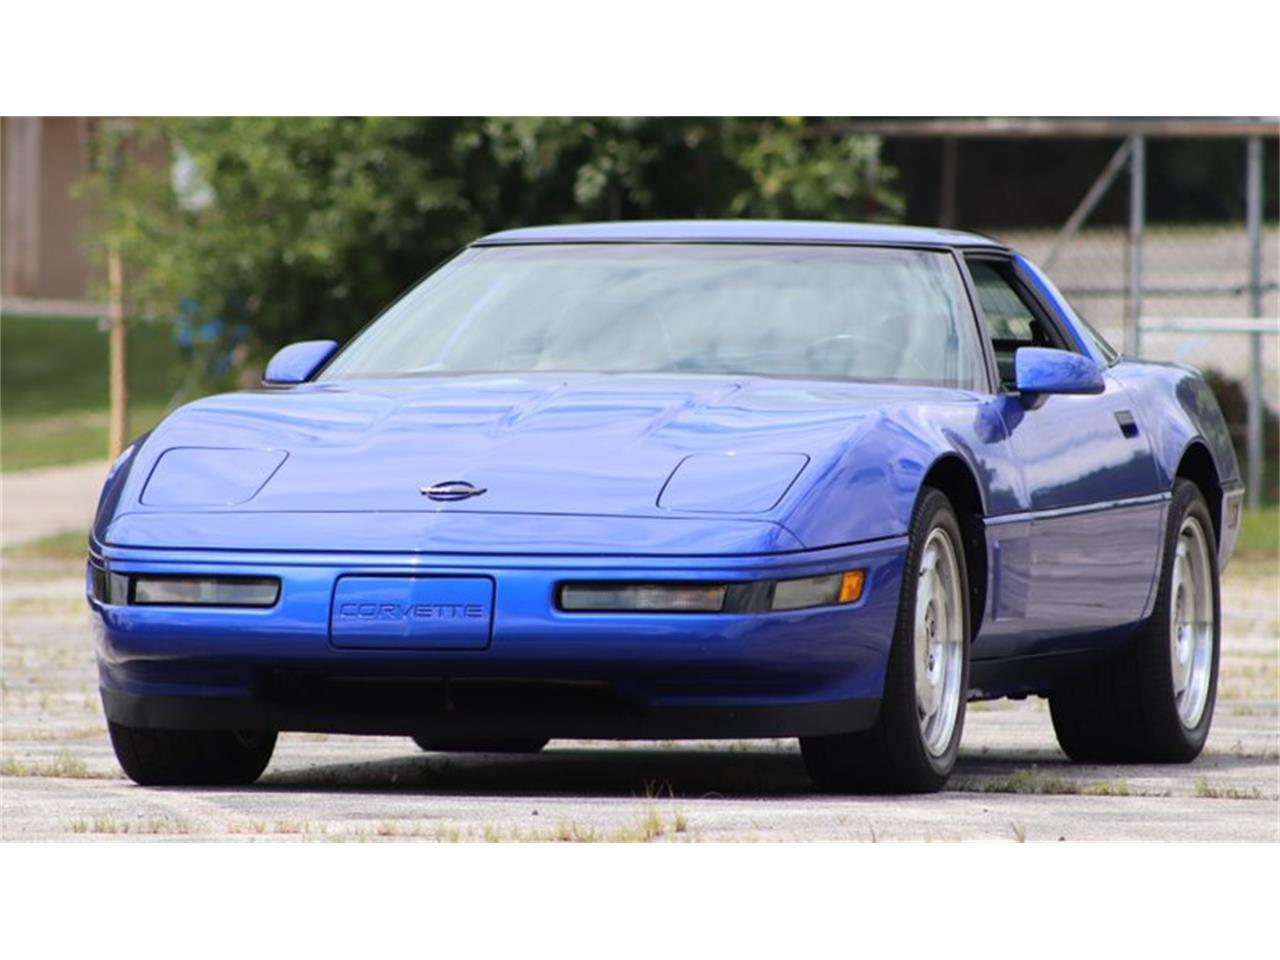 1995 Chevrolet Corvette for sale in Alsip, IL – photo 79